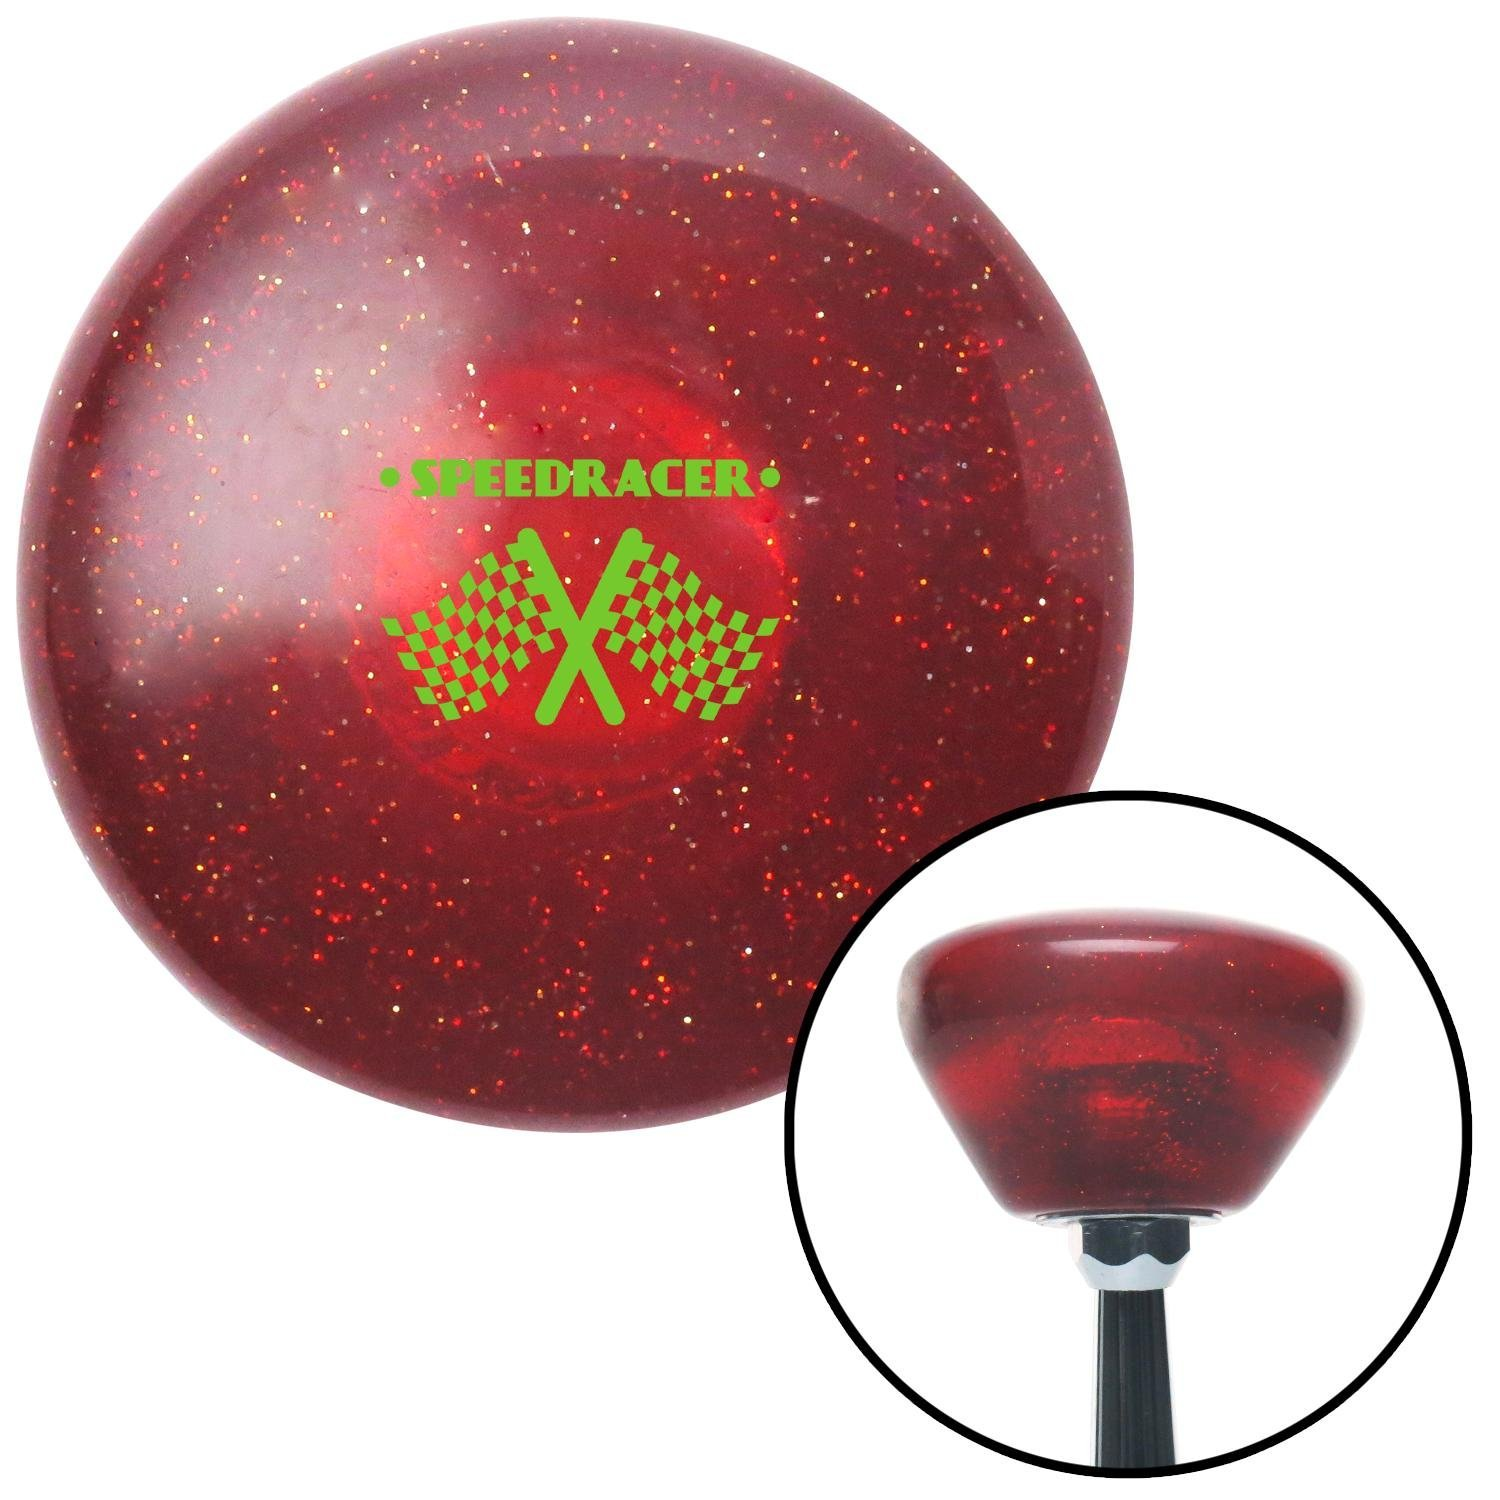 American Shifter 291342 Shift Knob Green Speed Racer Red Retro Metal Flake with M16 x 1.5 Insert